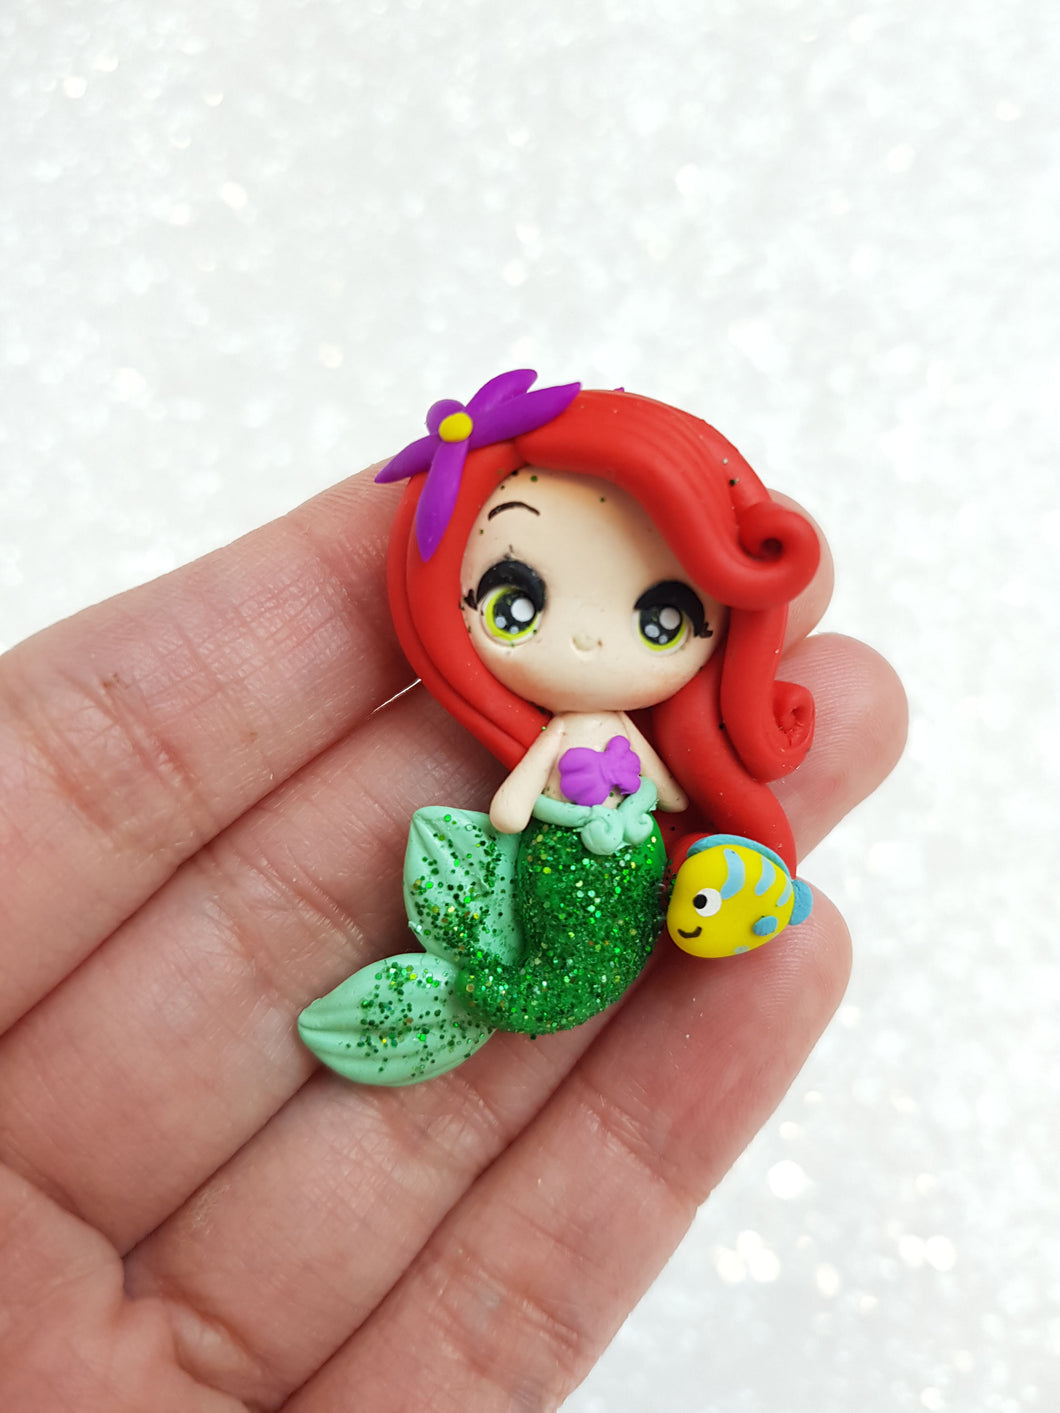 Clay Charm Embellishment - Big Eyes Arl mermaid approx 4cm - Crafty Mood